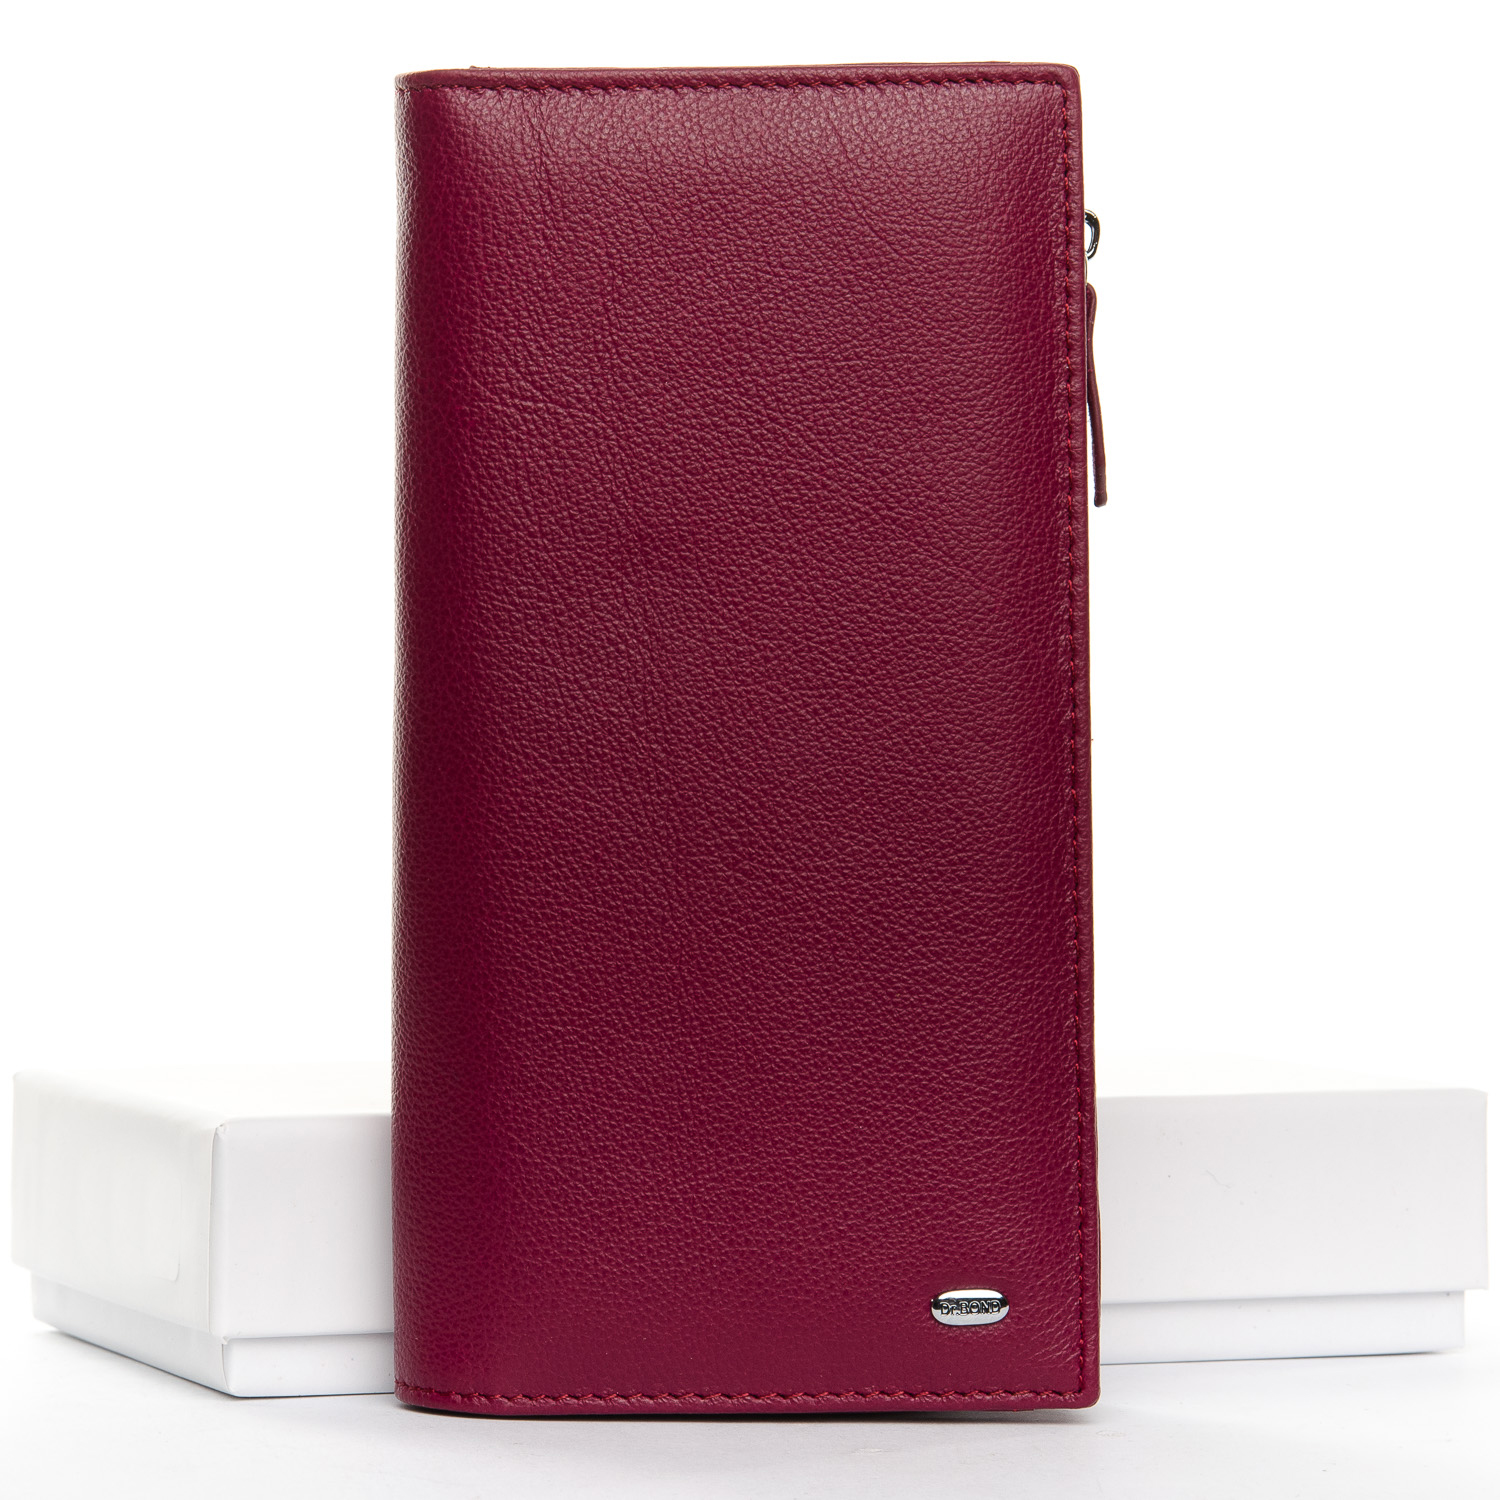 Кошелек Classic кожа DR. BOND WMB-3M plum-red